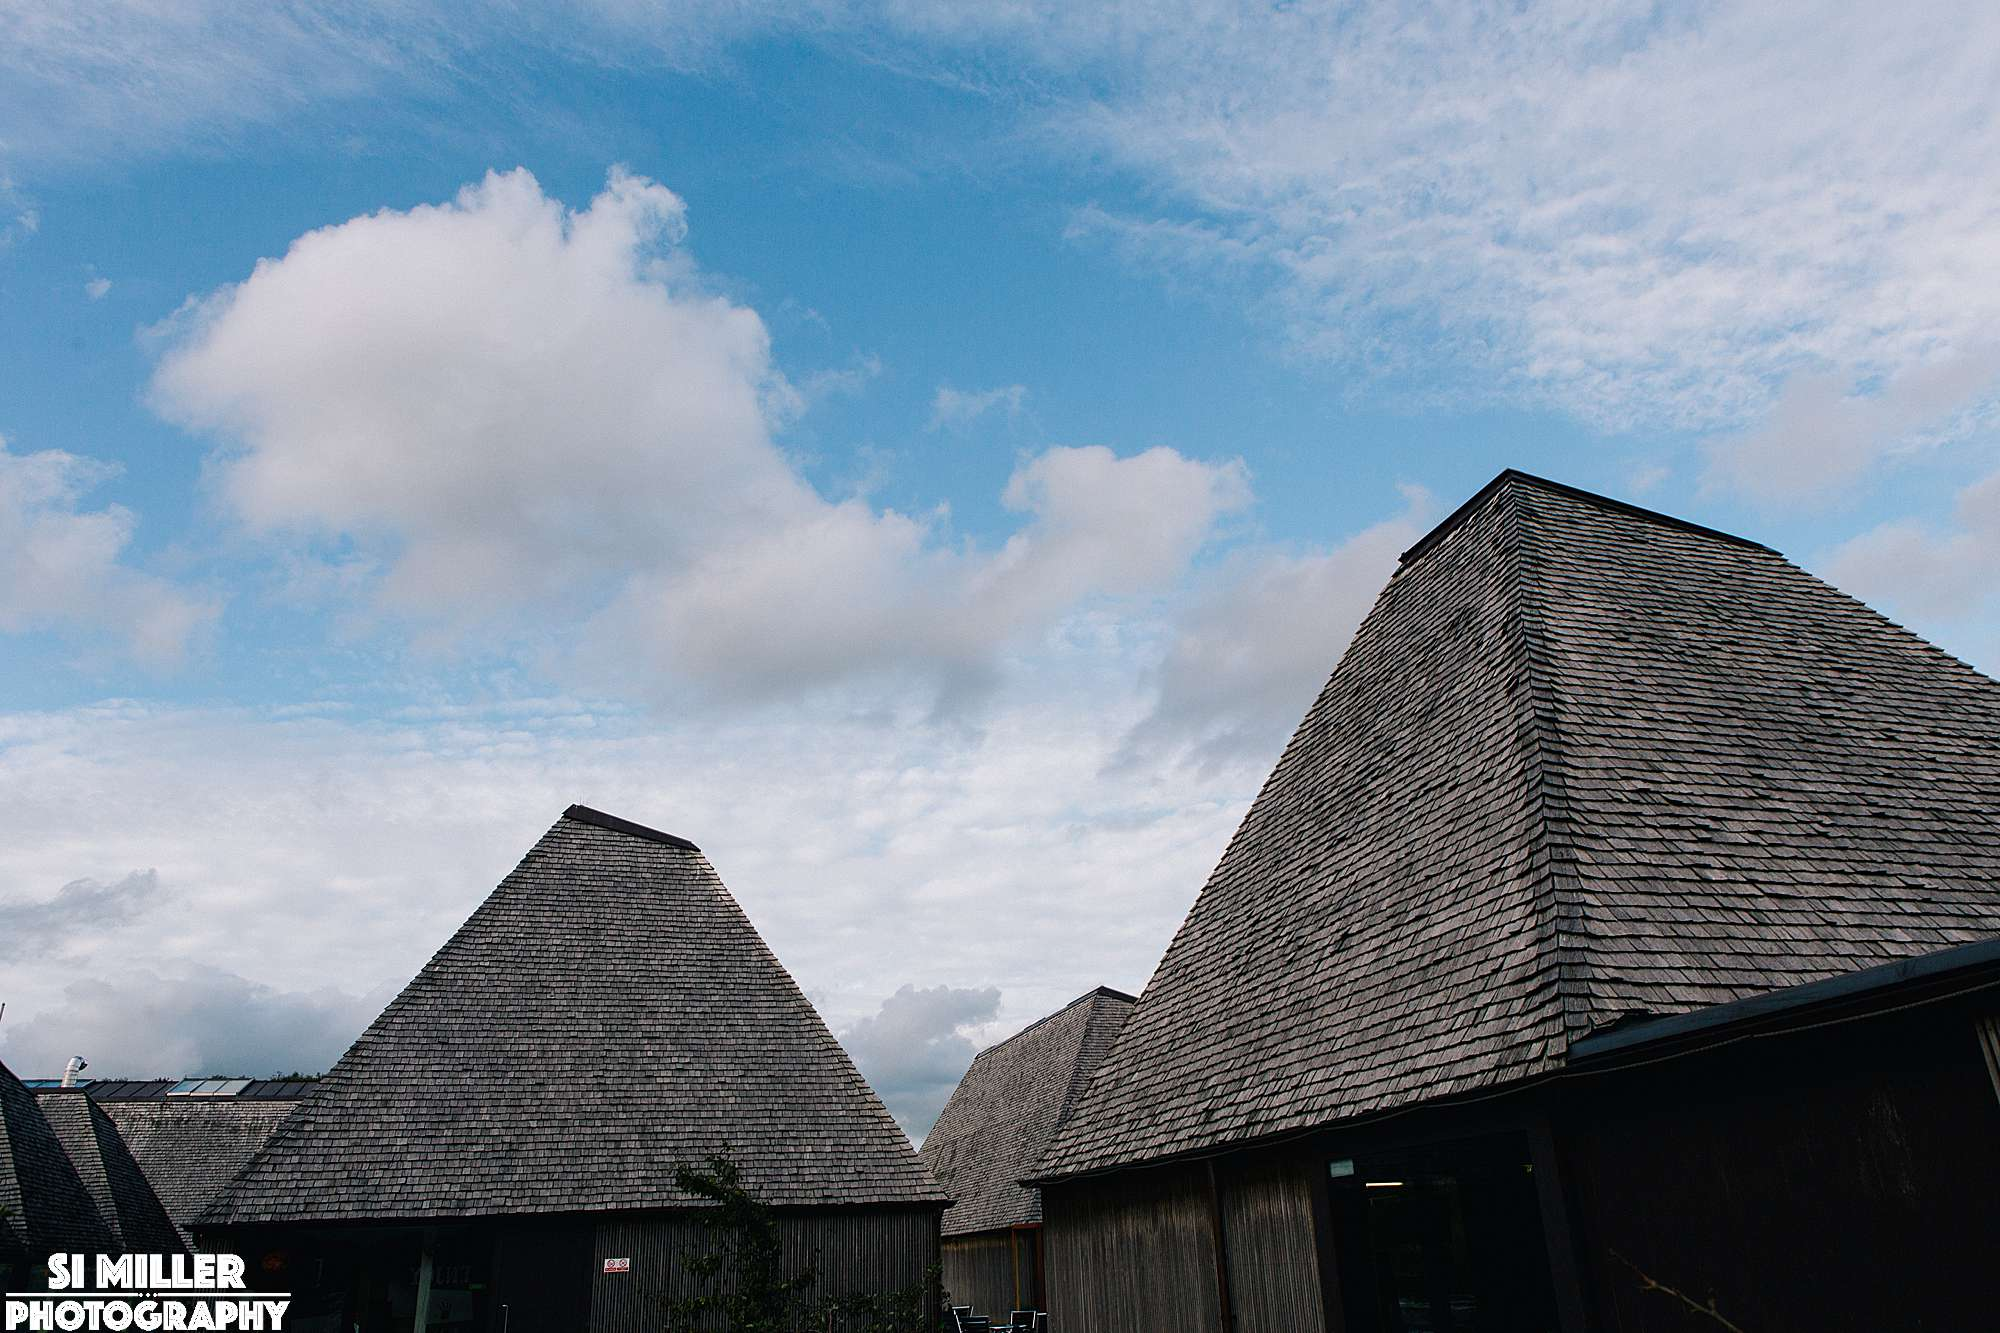 Roofs of brockholes buildings that are environmental friendly with sky and clouds